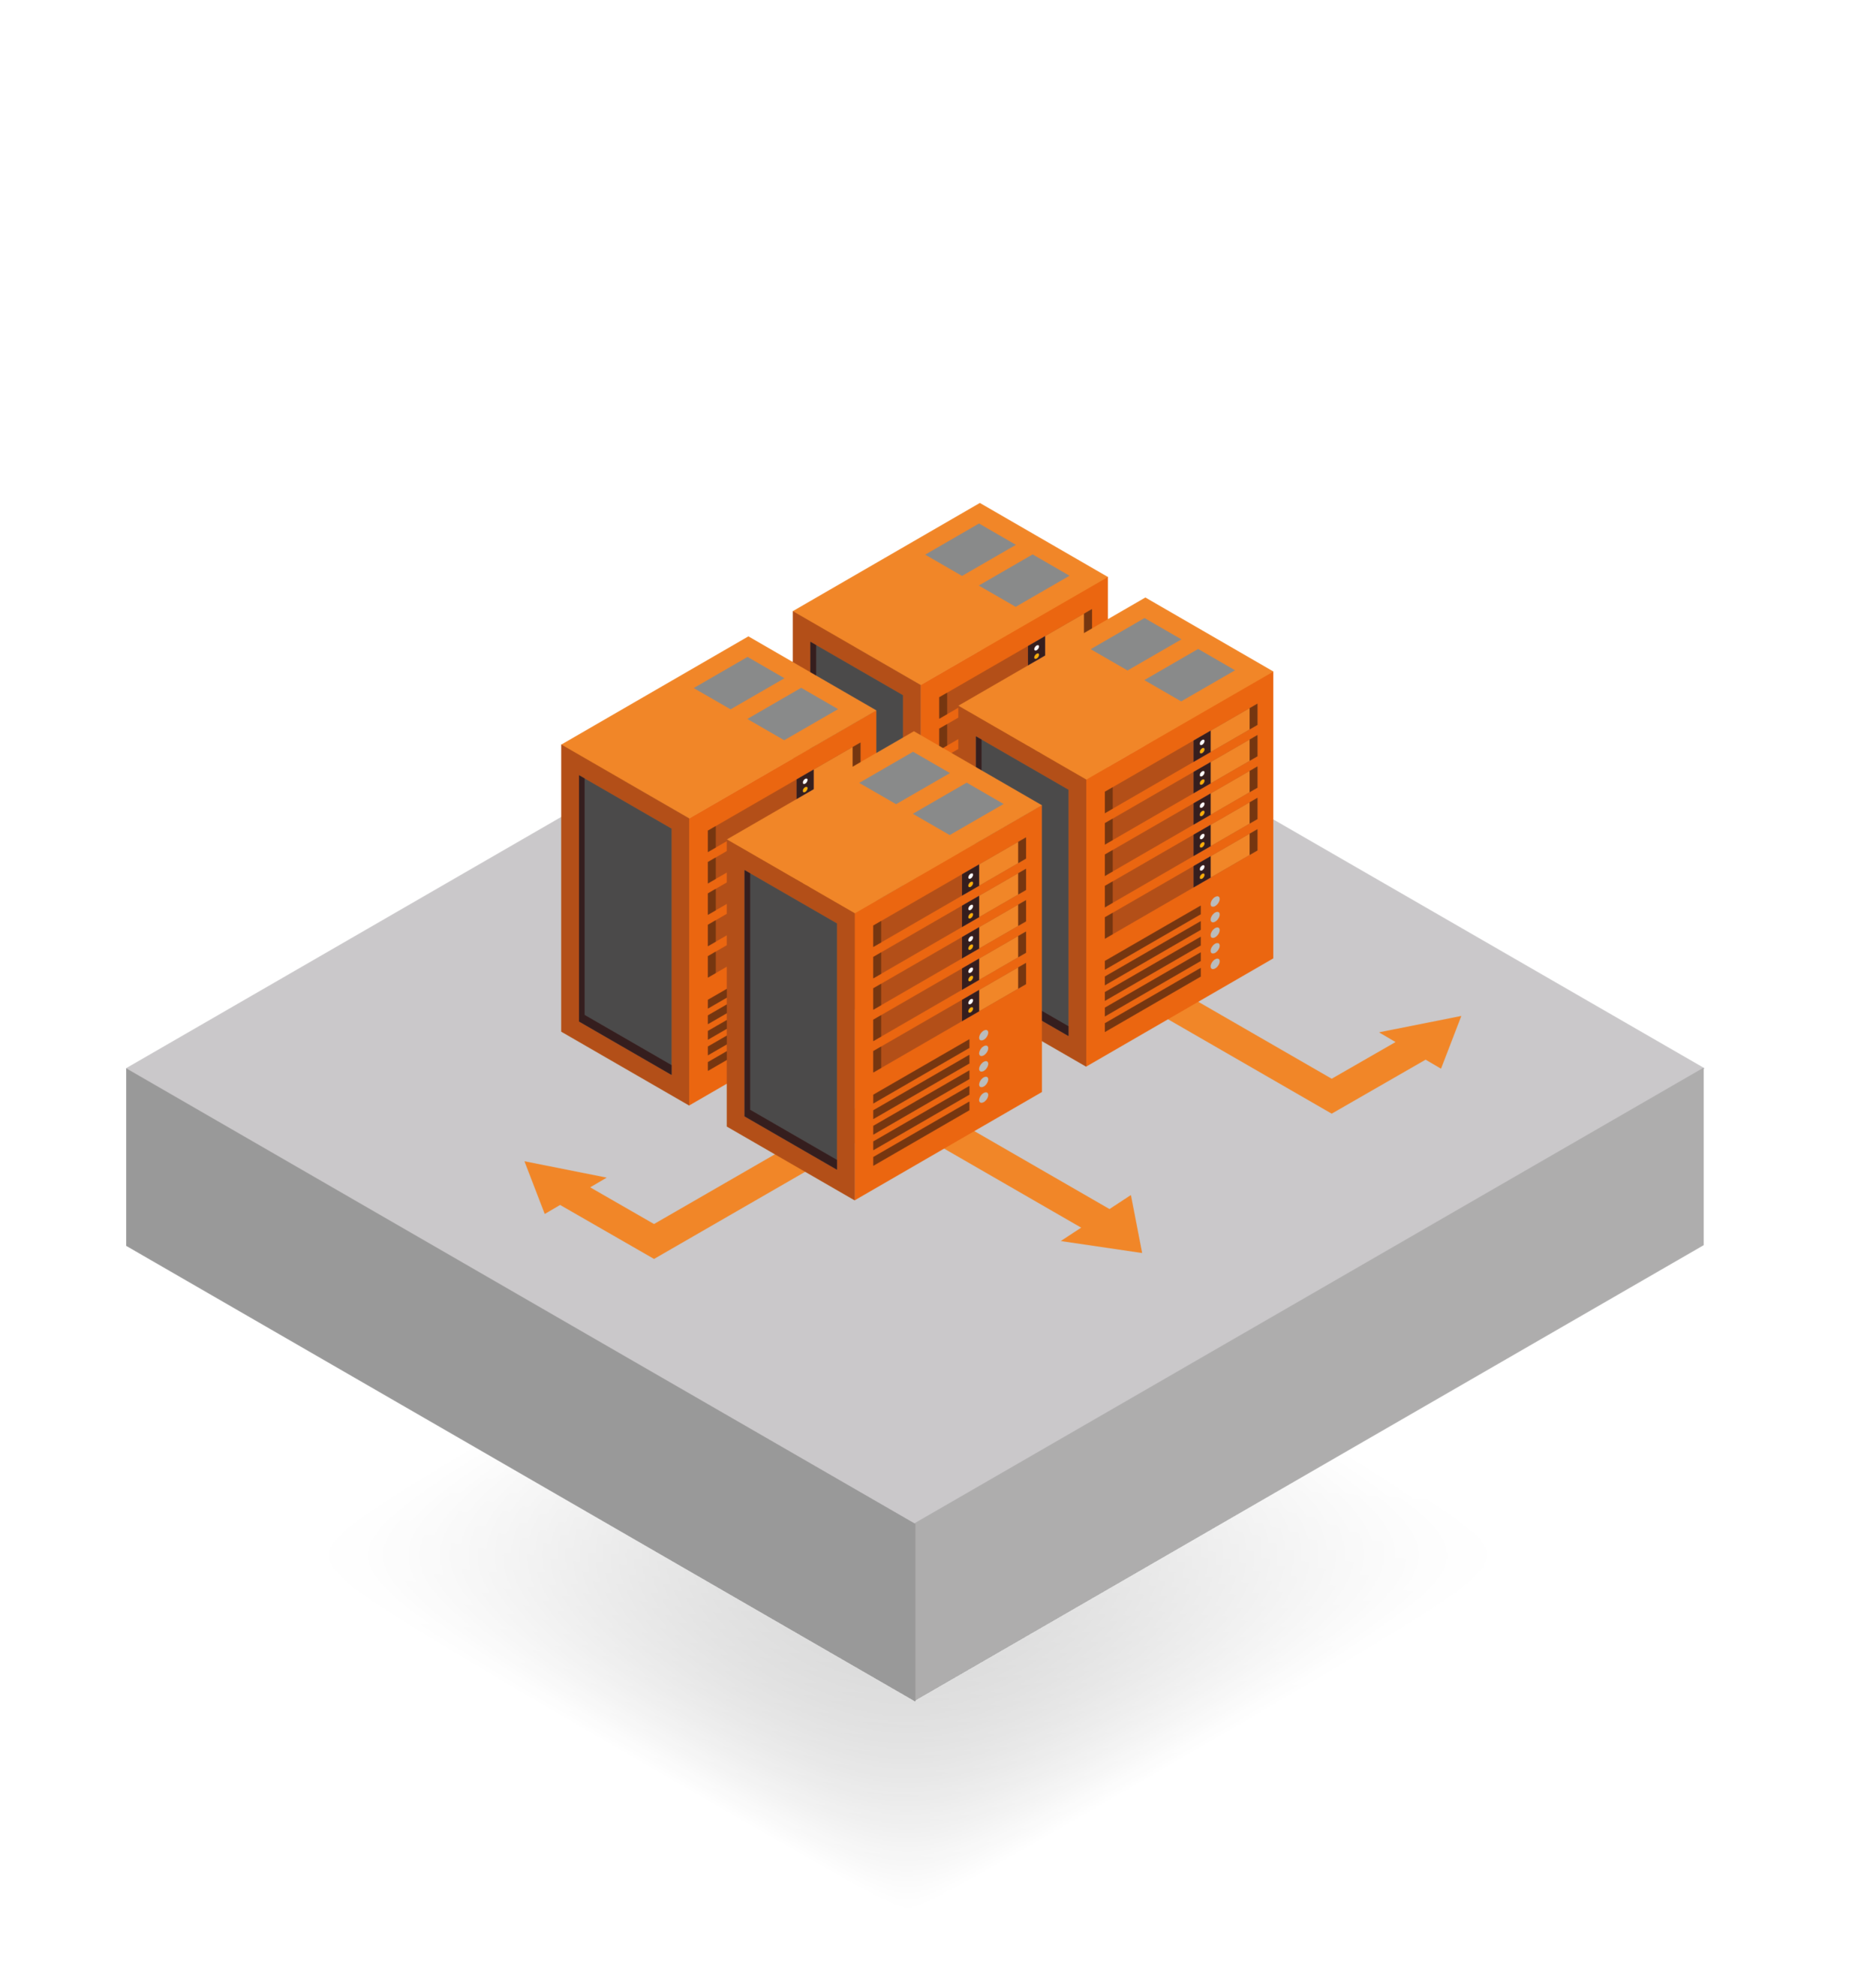 Data Centre 3D Image.png